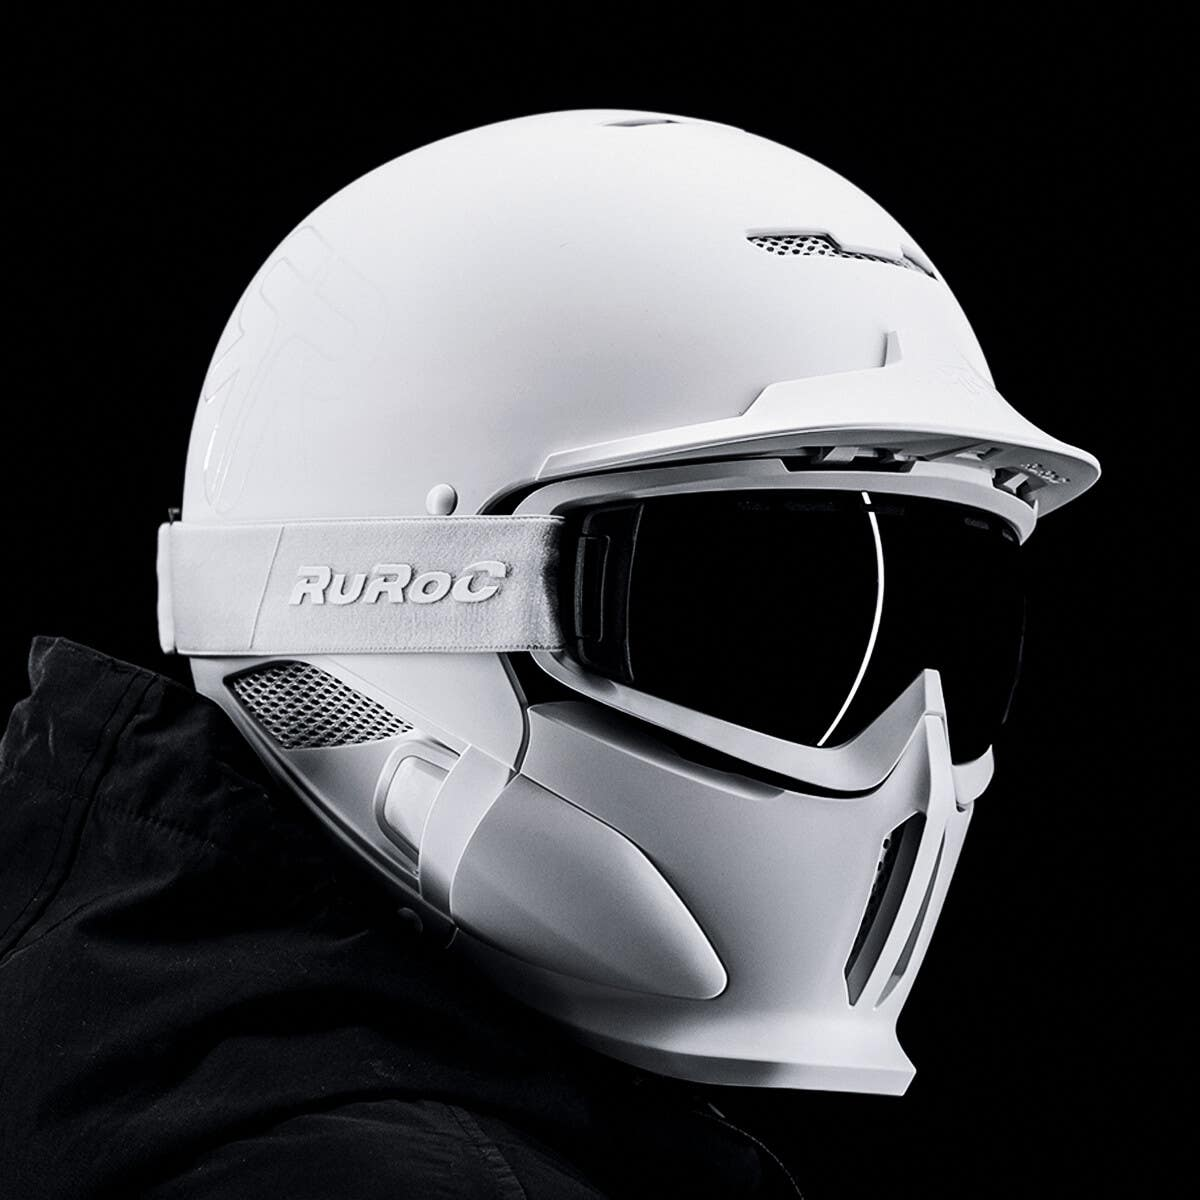 RG1-DX Ghost - Full Face Ski Helmet